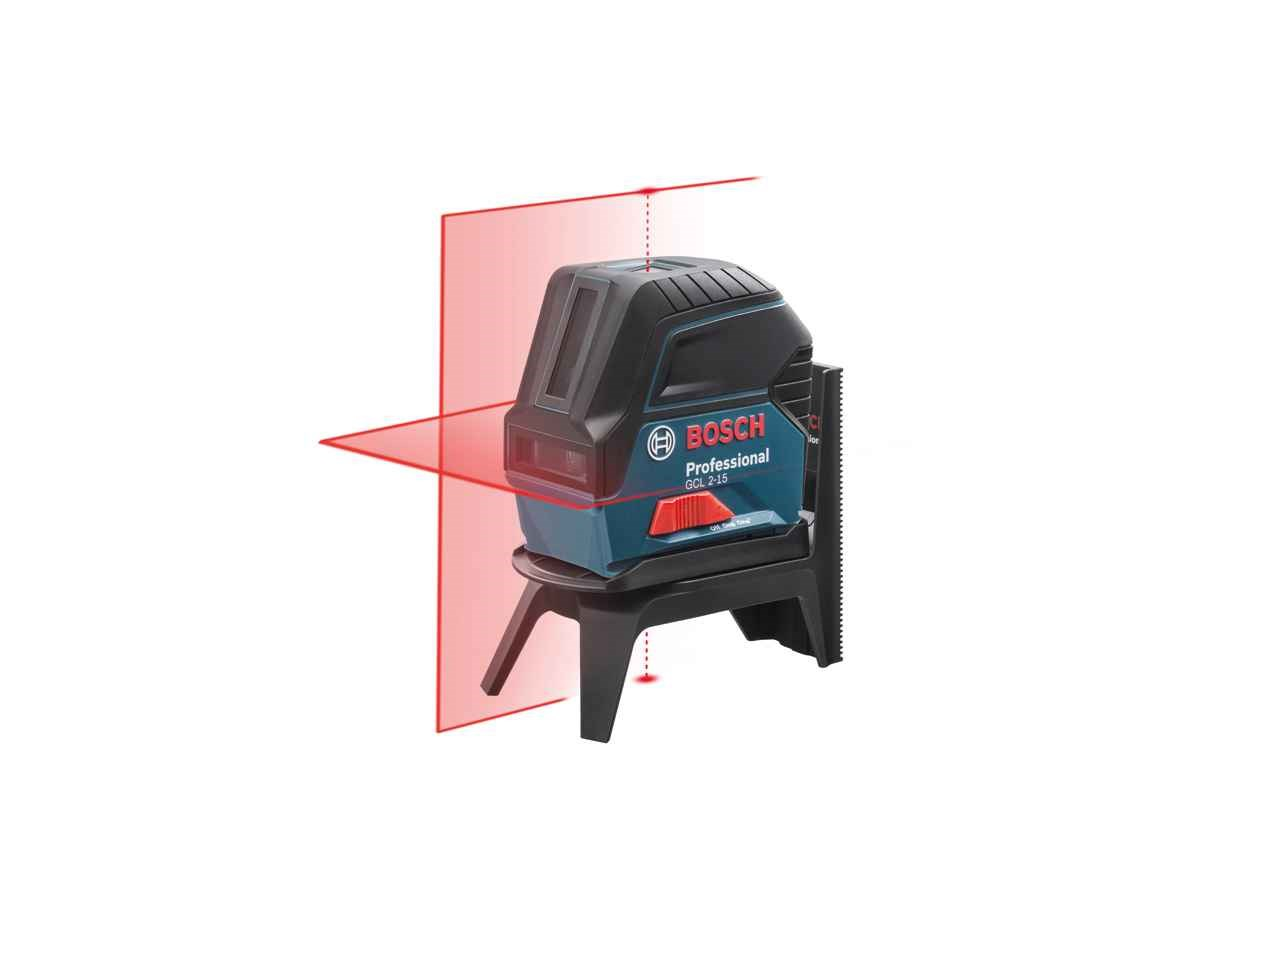 Bosch Gcl215 Self Levelling Cross Line Laser And Plumb Level Gll 3 15 Mini Authorised Reseller